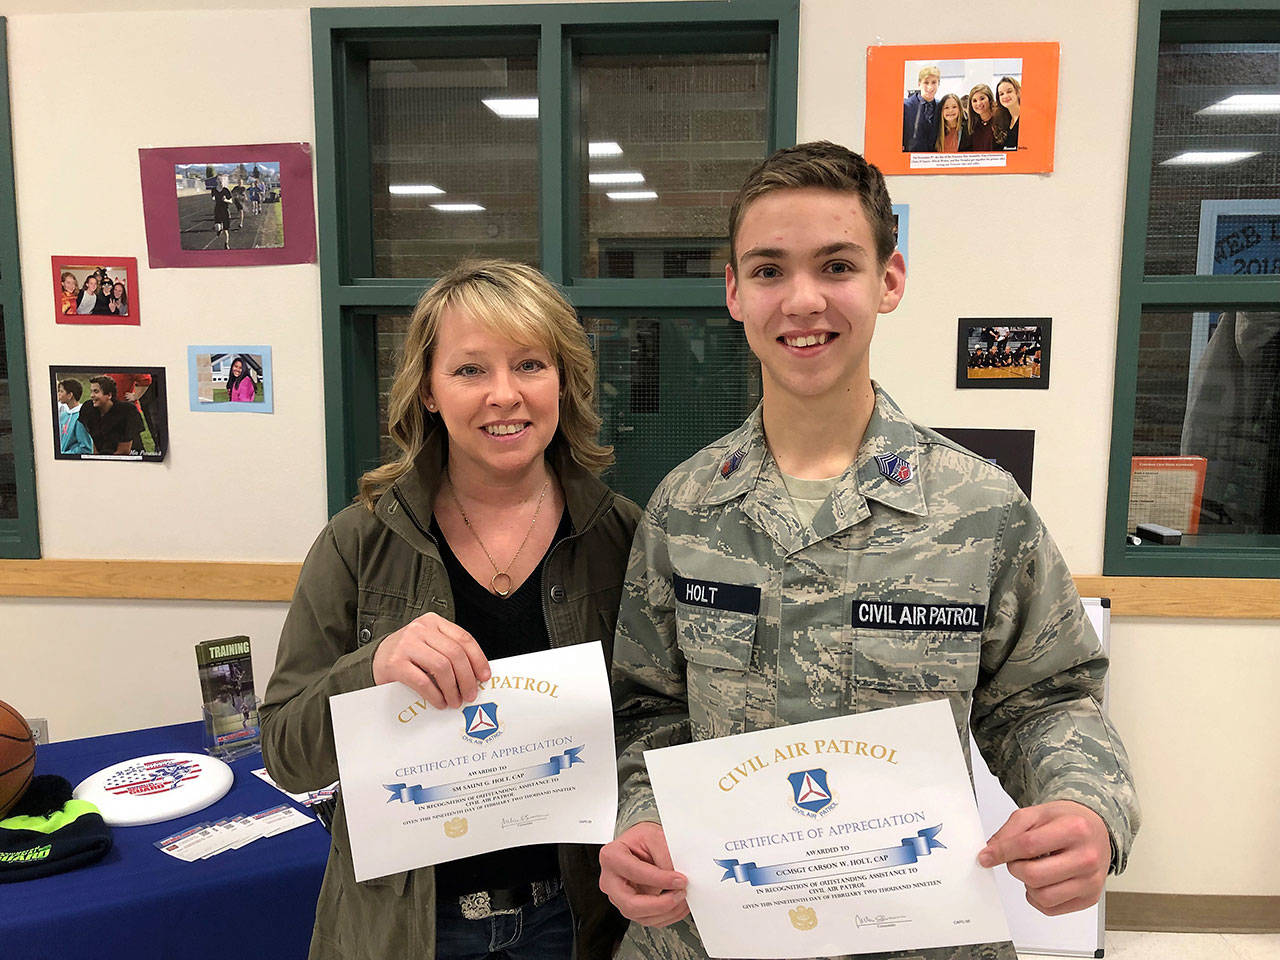 Two Civil Air Patrol members, senior member Sauni Holt and cadet CMSgt. Carson Holt, show certificates they received with challenge coins for their recent donation to the organization's unit in Sequim. Photo courtesy of Civil Air Patrol                                 Two Civil Air Patrol members, senior member Sauni Holt and cadet CMSgt. Carson Holt, show certificates they received with challenge coins for their recent donation to the organization's unit in Sequim. Photo courtesy of Civil Air Patrol